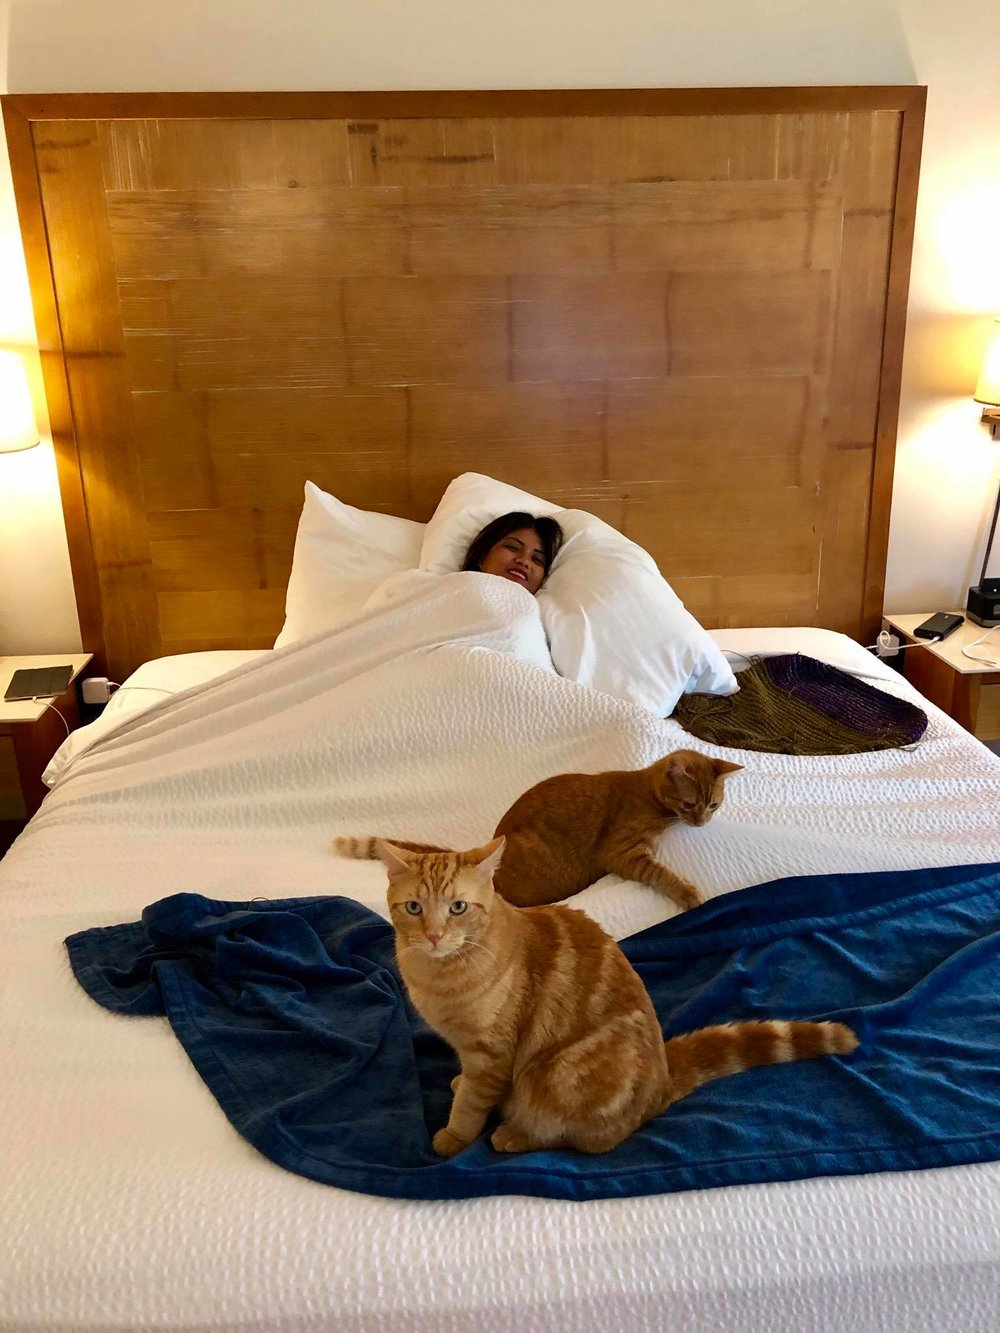 Sailing Life Day 322 Hotel Life of The Sailors Cats - Captain Ahab & Little Zissou's Luxury Staycation3.jpg